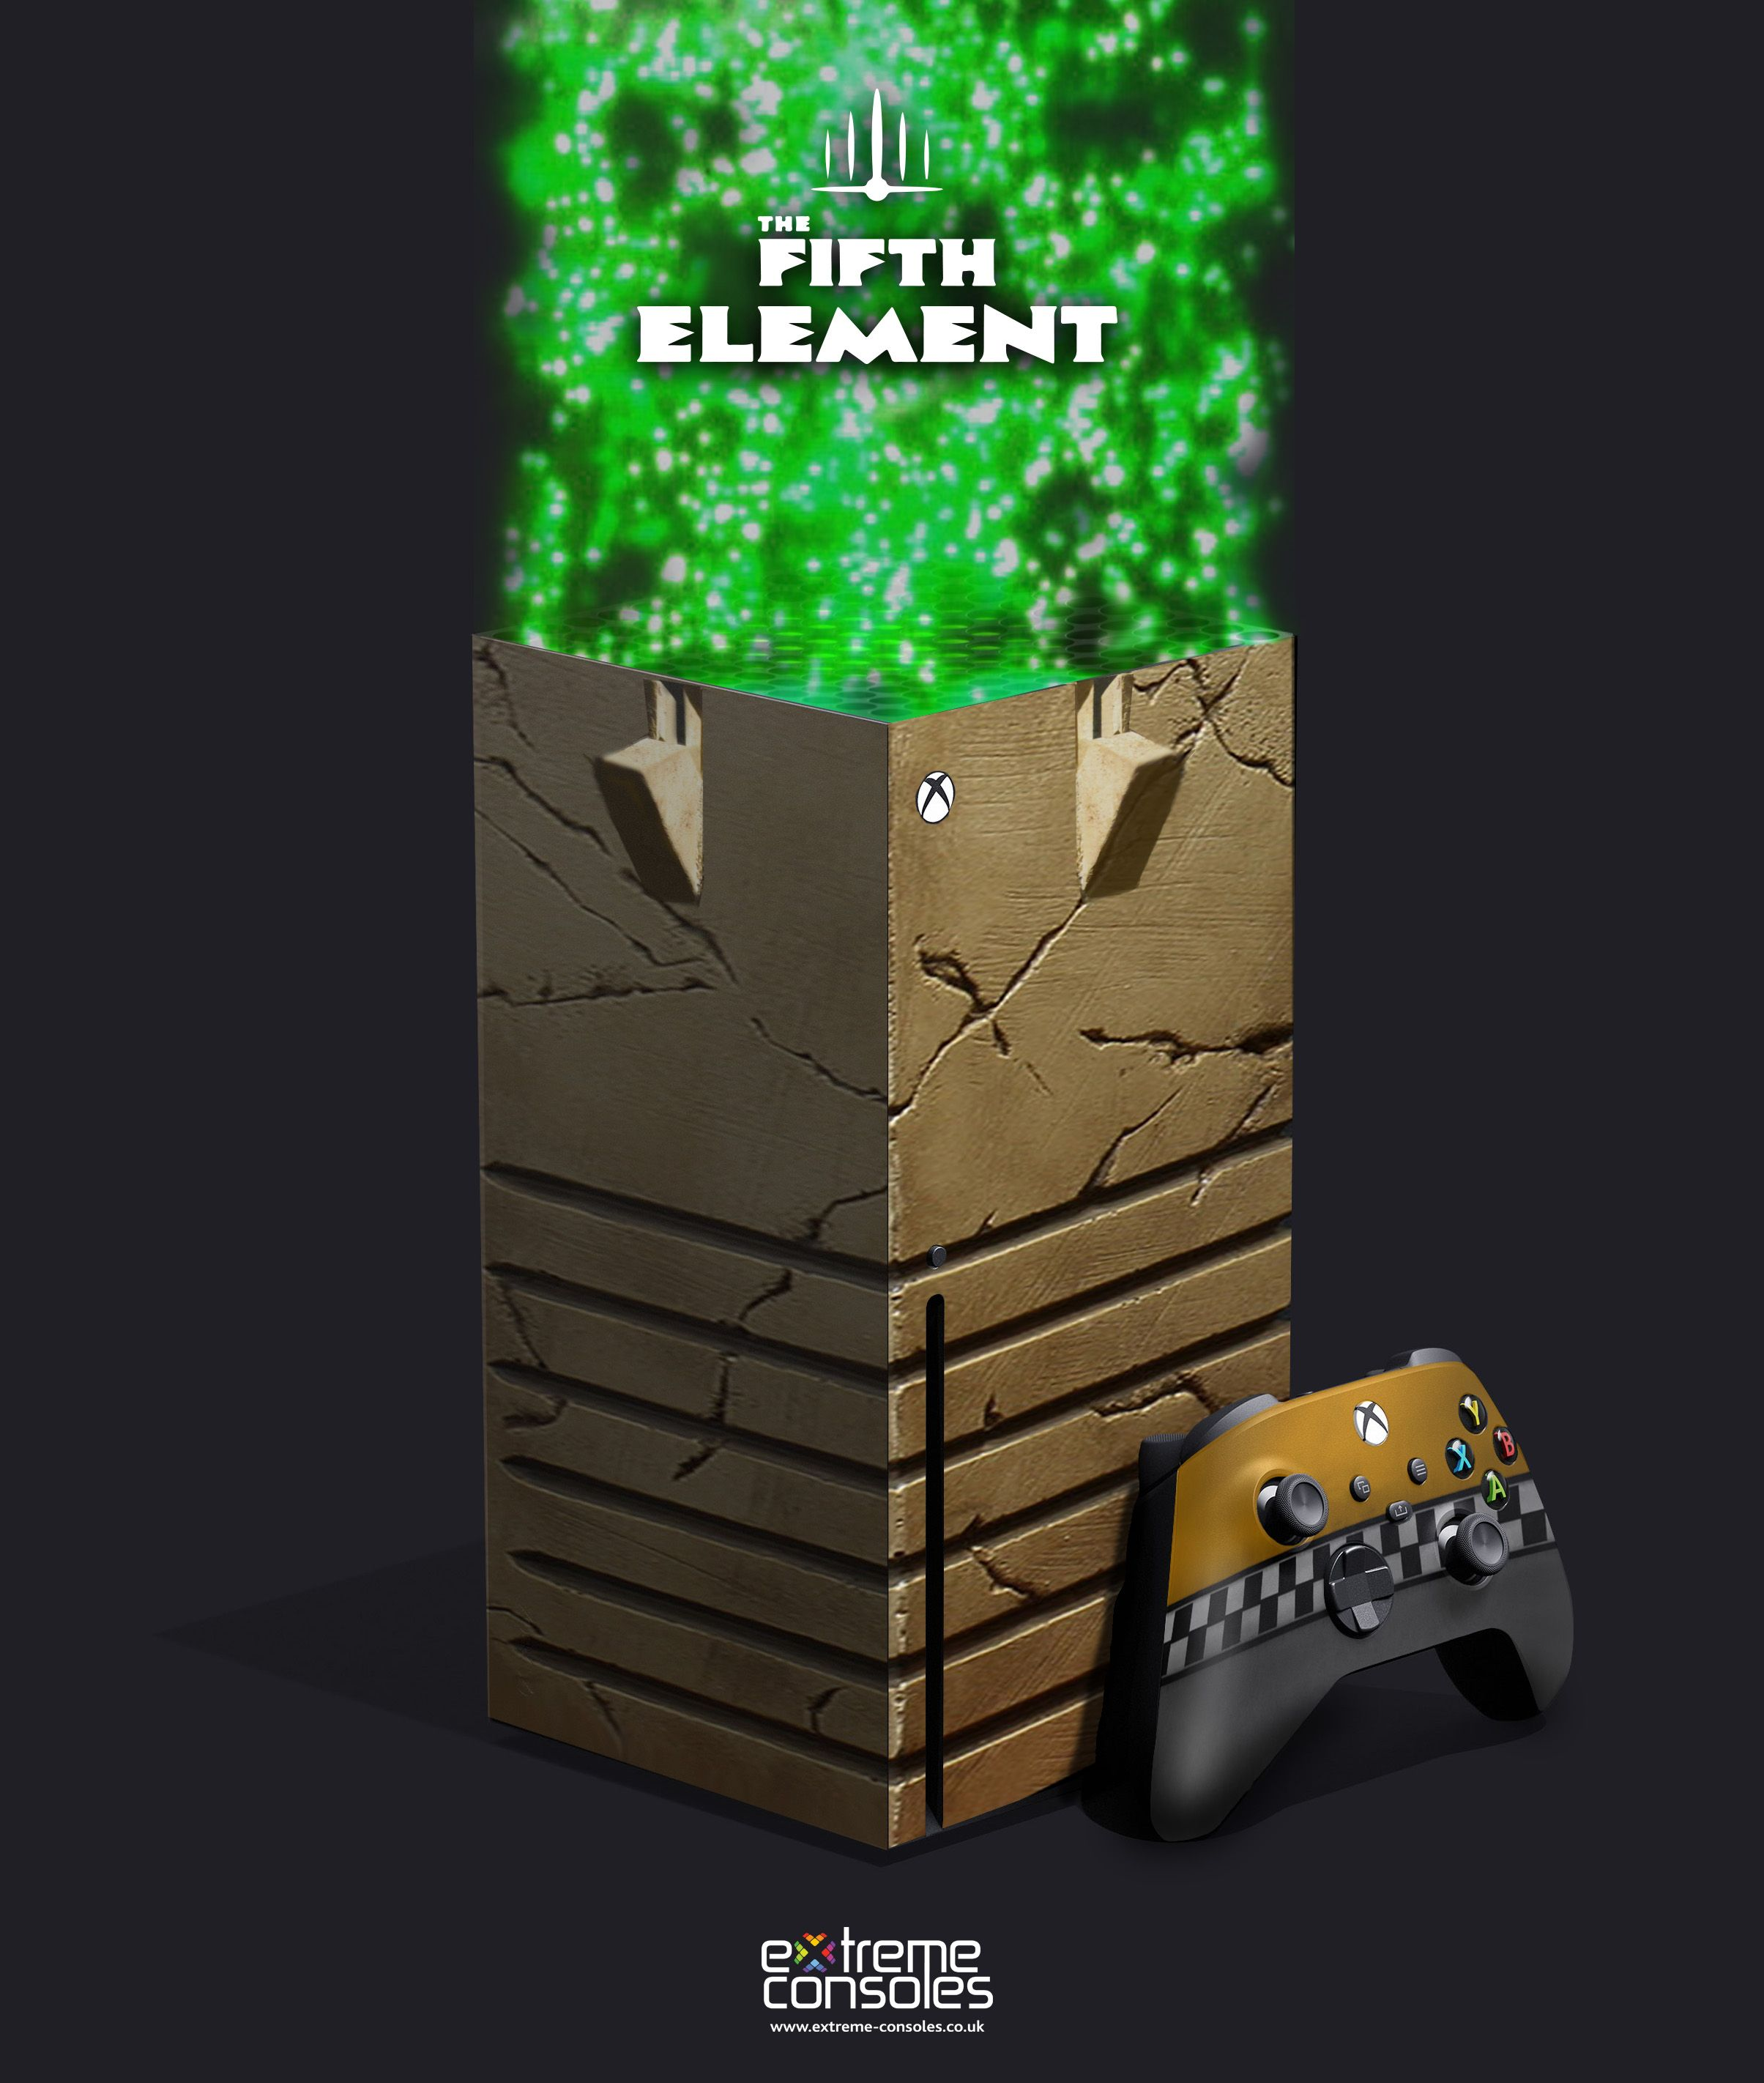 Extreme Consoles On Twitter In 2020 Custom Xbox Fifth Element Concept Design